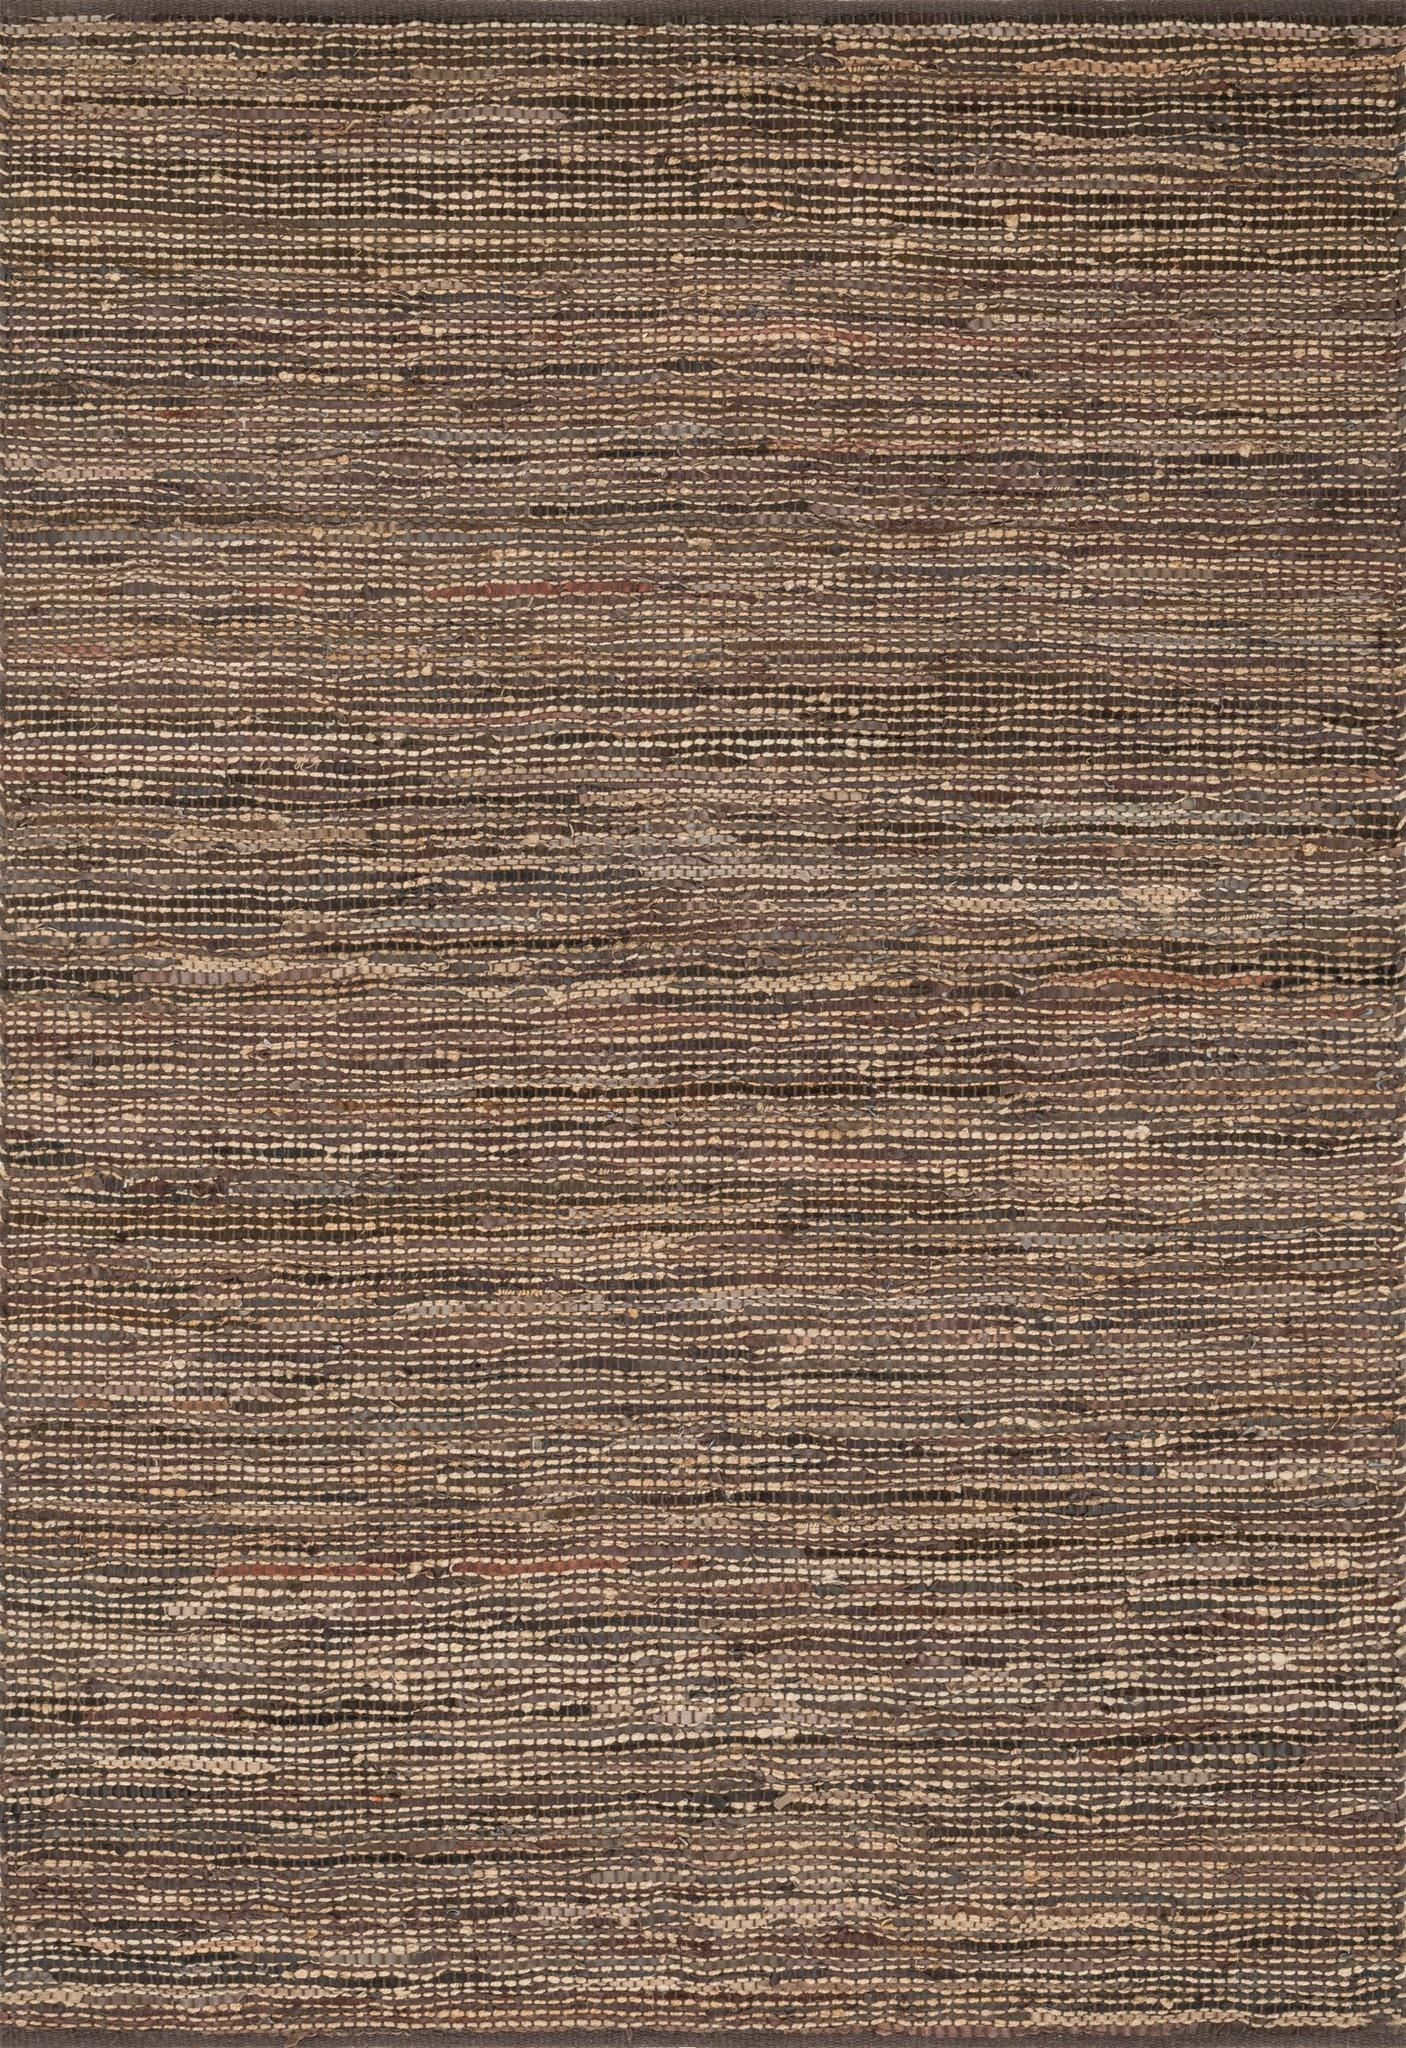 "Edge ED-01 Brown-Area Rug-Loloi-2'-3"" x 3'-9""-The Rug Truck"